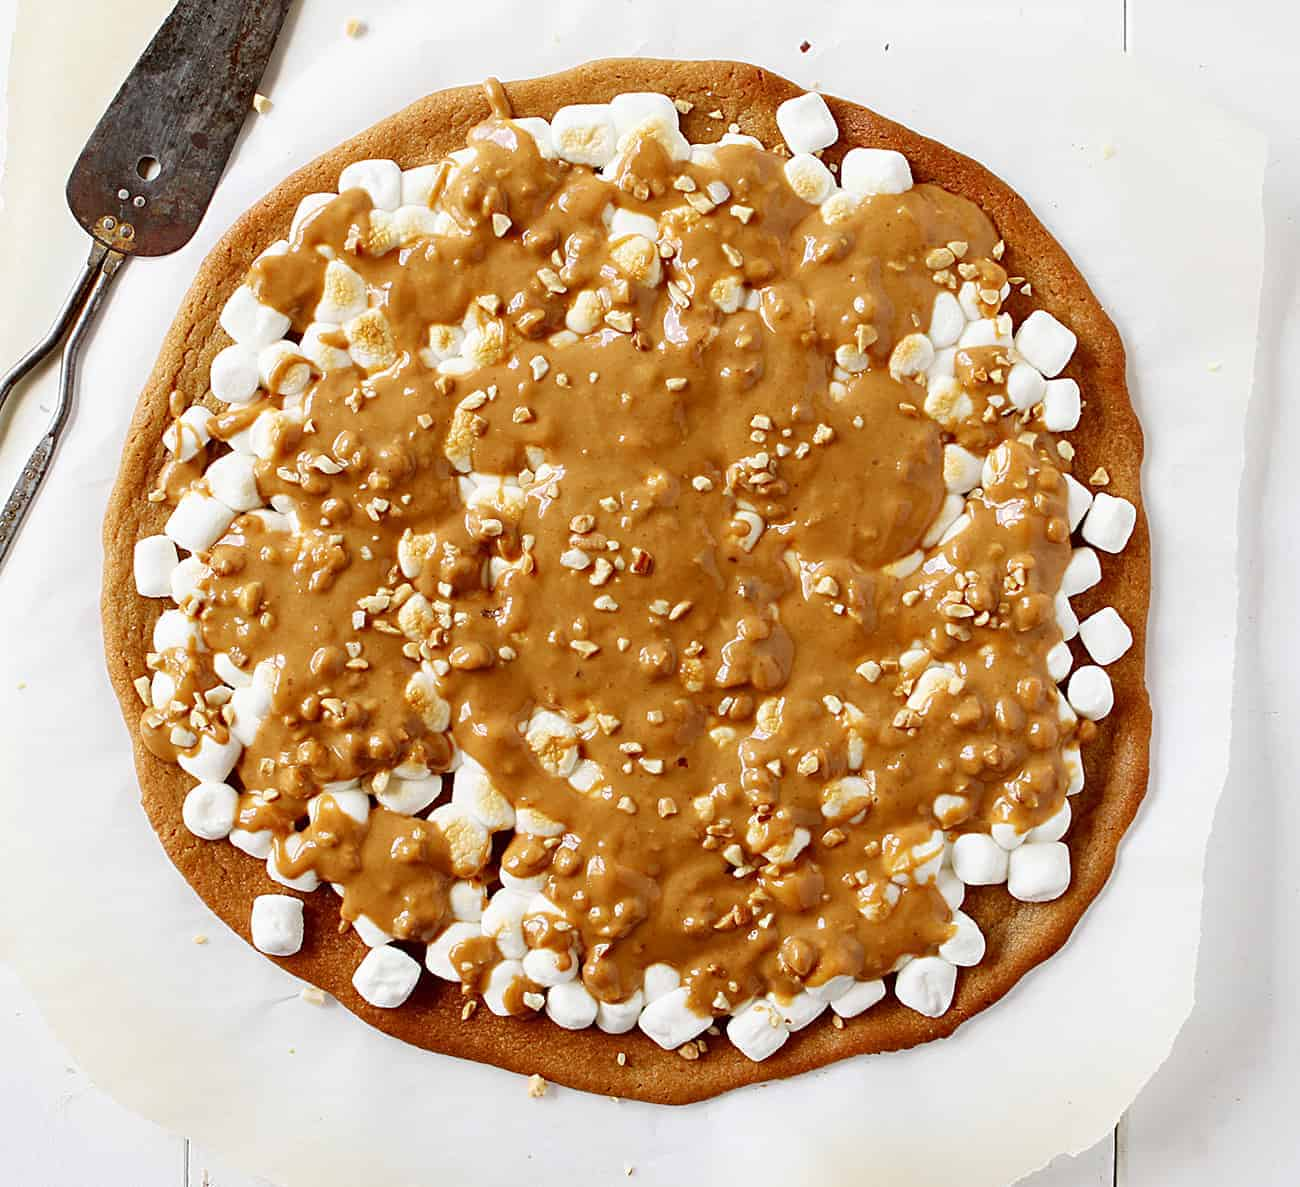 Overhead of Peanut Butter Marshmallow Dessert Pizza on Parchment Paper